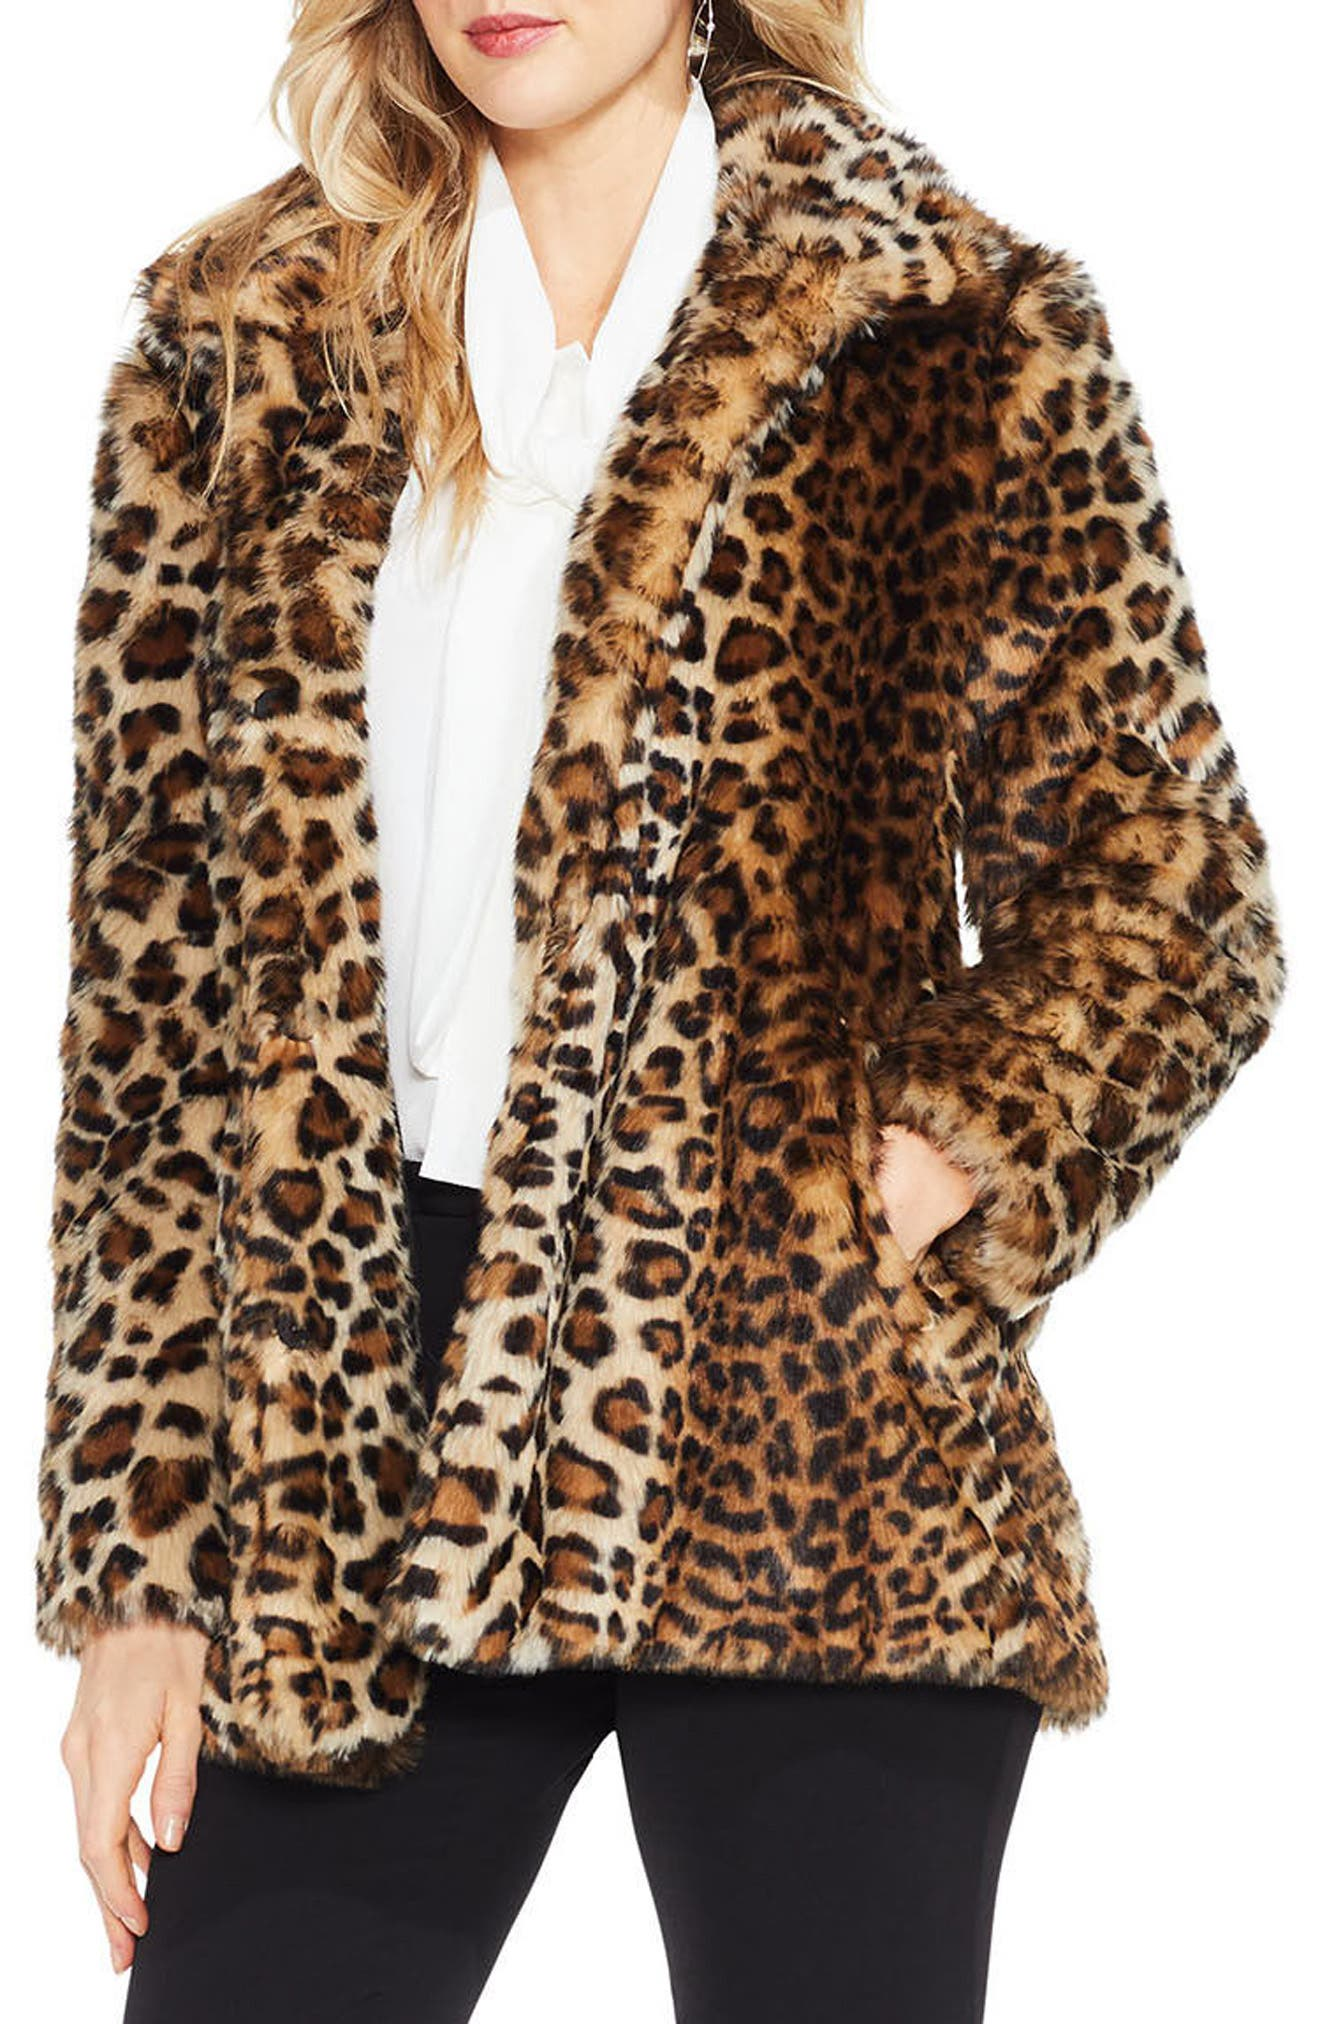 Girls' Puffer Jacket with Zebra Print Lining and Accessories. from $ 12 75 Prime. out of 5 stars 8. Good Lad. Toddler Girl Zebra Print Double Breasted Fleece Jacket $ 16 99 Prime. uxcell. Women's Plus Size Leopard Print Asymmetric Open Front Fashion Cardigan. from $ 19 99 Prime. out of 5 stars